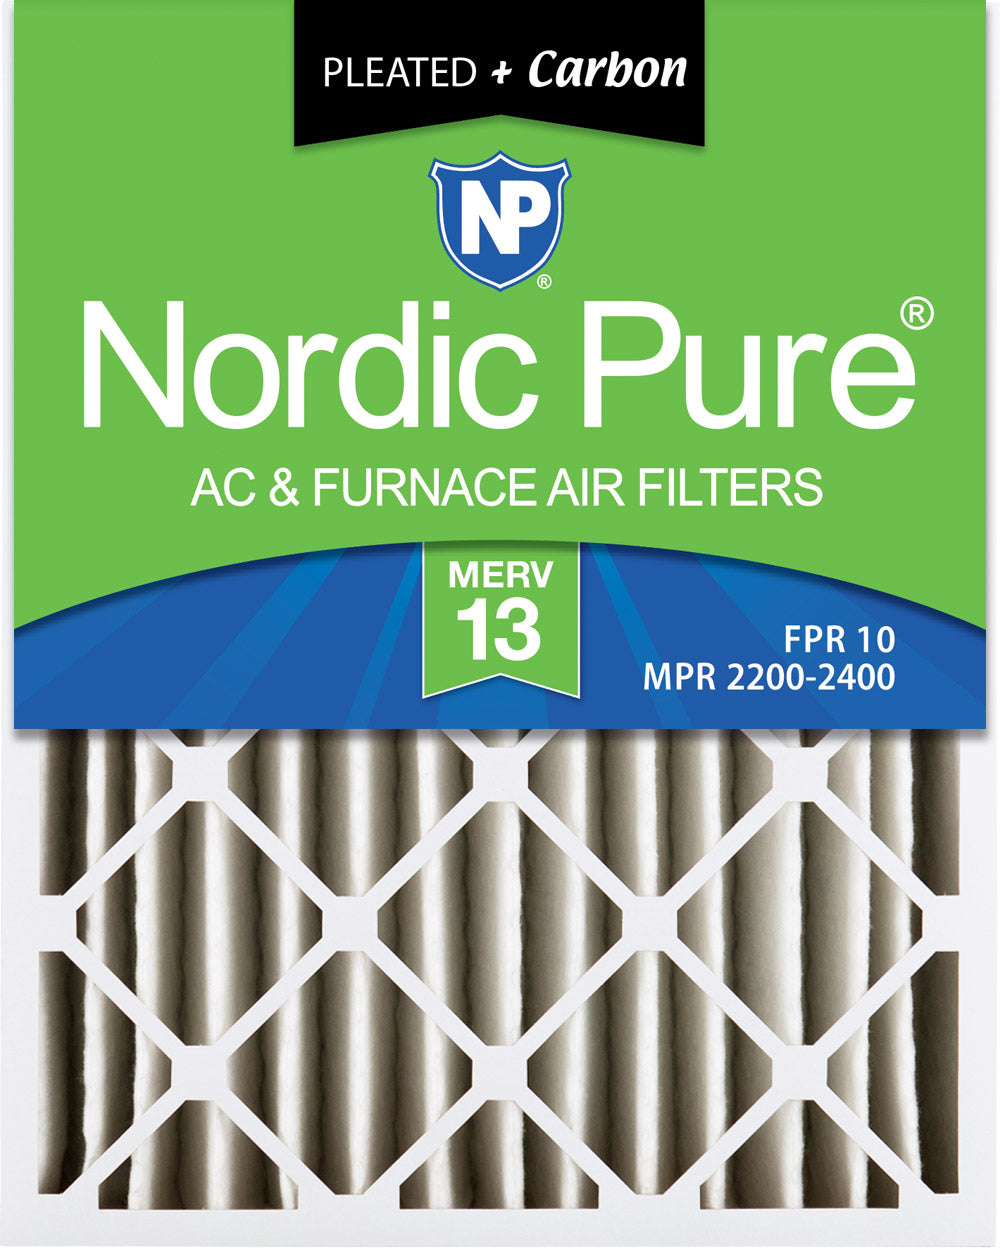 16x20x4 (3 5/8) Pleated Air Filters MERV 13 Plus Carbon 2 Pack